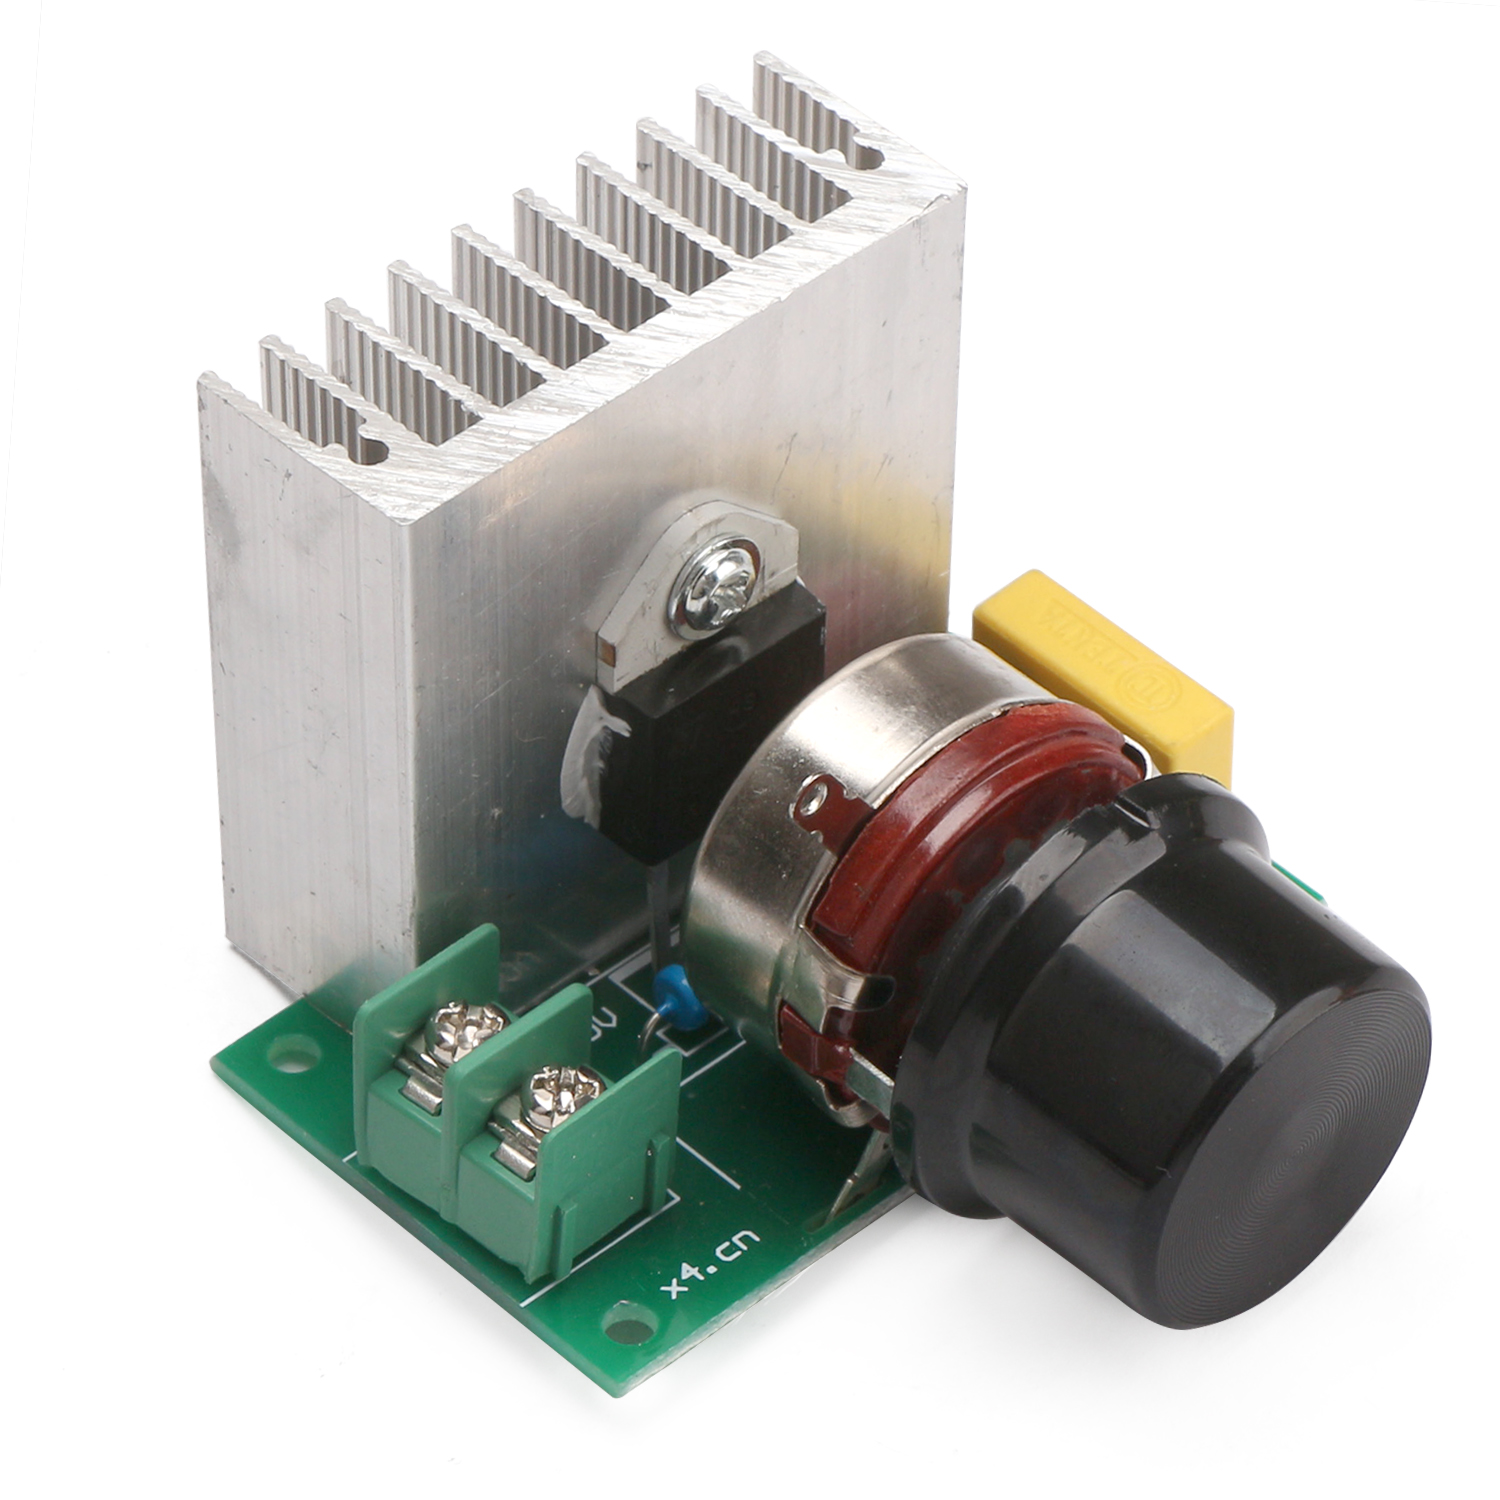 AC 220V 3800W SCR Motor Speed Controller Imported Thyristor Power Electronic Dimmer Voltage Regulator Temperature Silicon Switch(China)